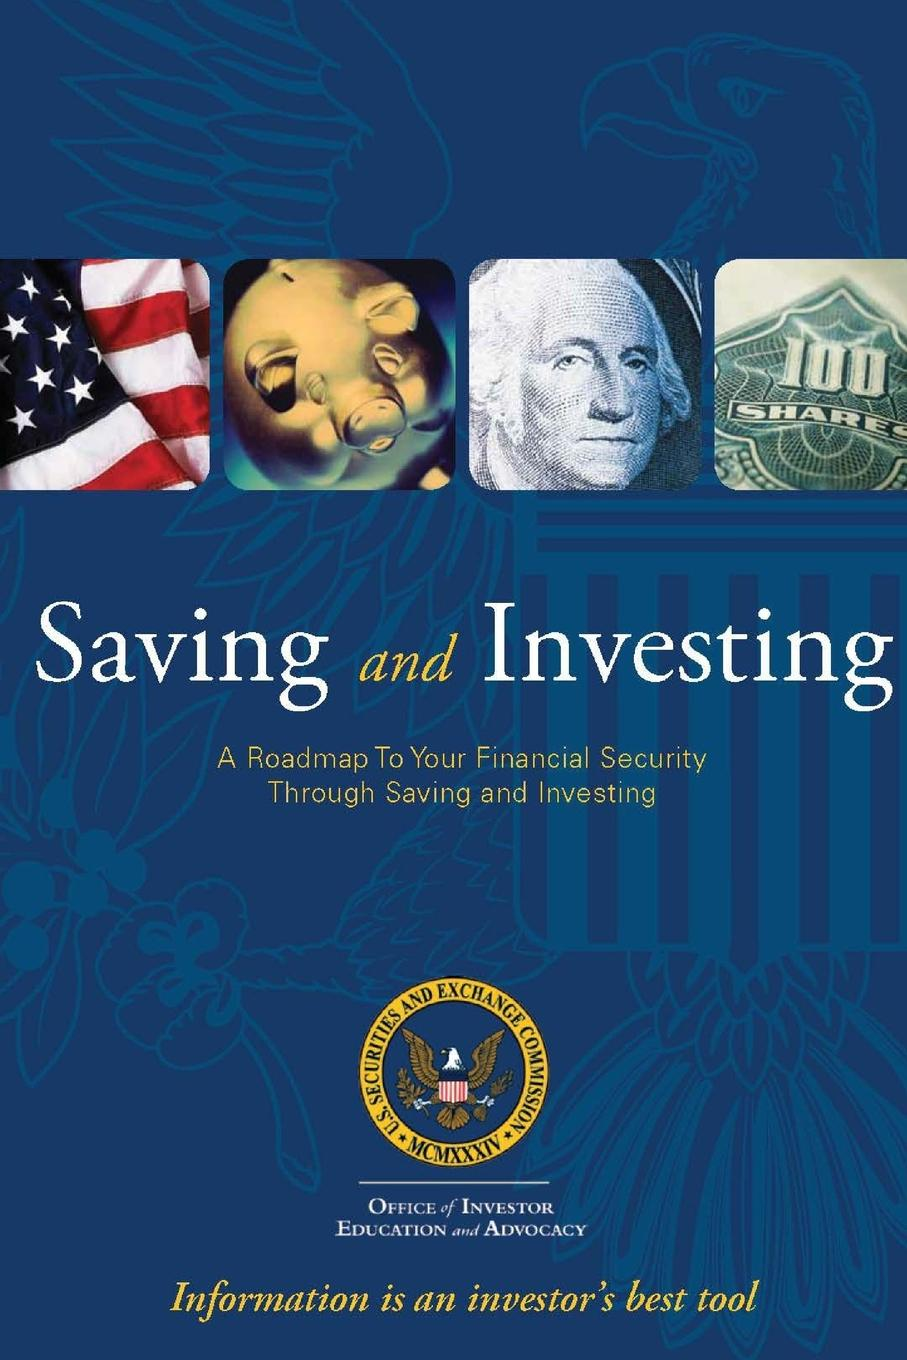 Saving and Investing. A Roadmap To Your Financial Security Through Saving and Investing While money doesn't grow on trees, it can grow when save...